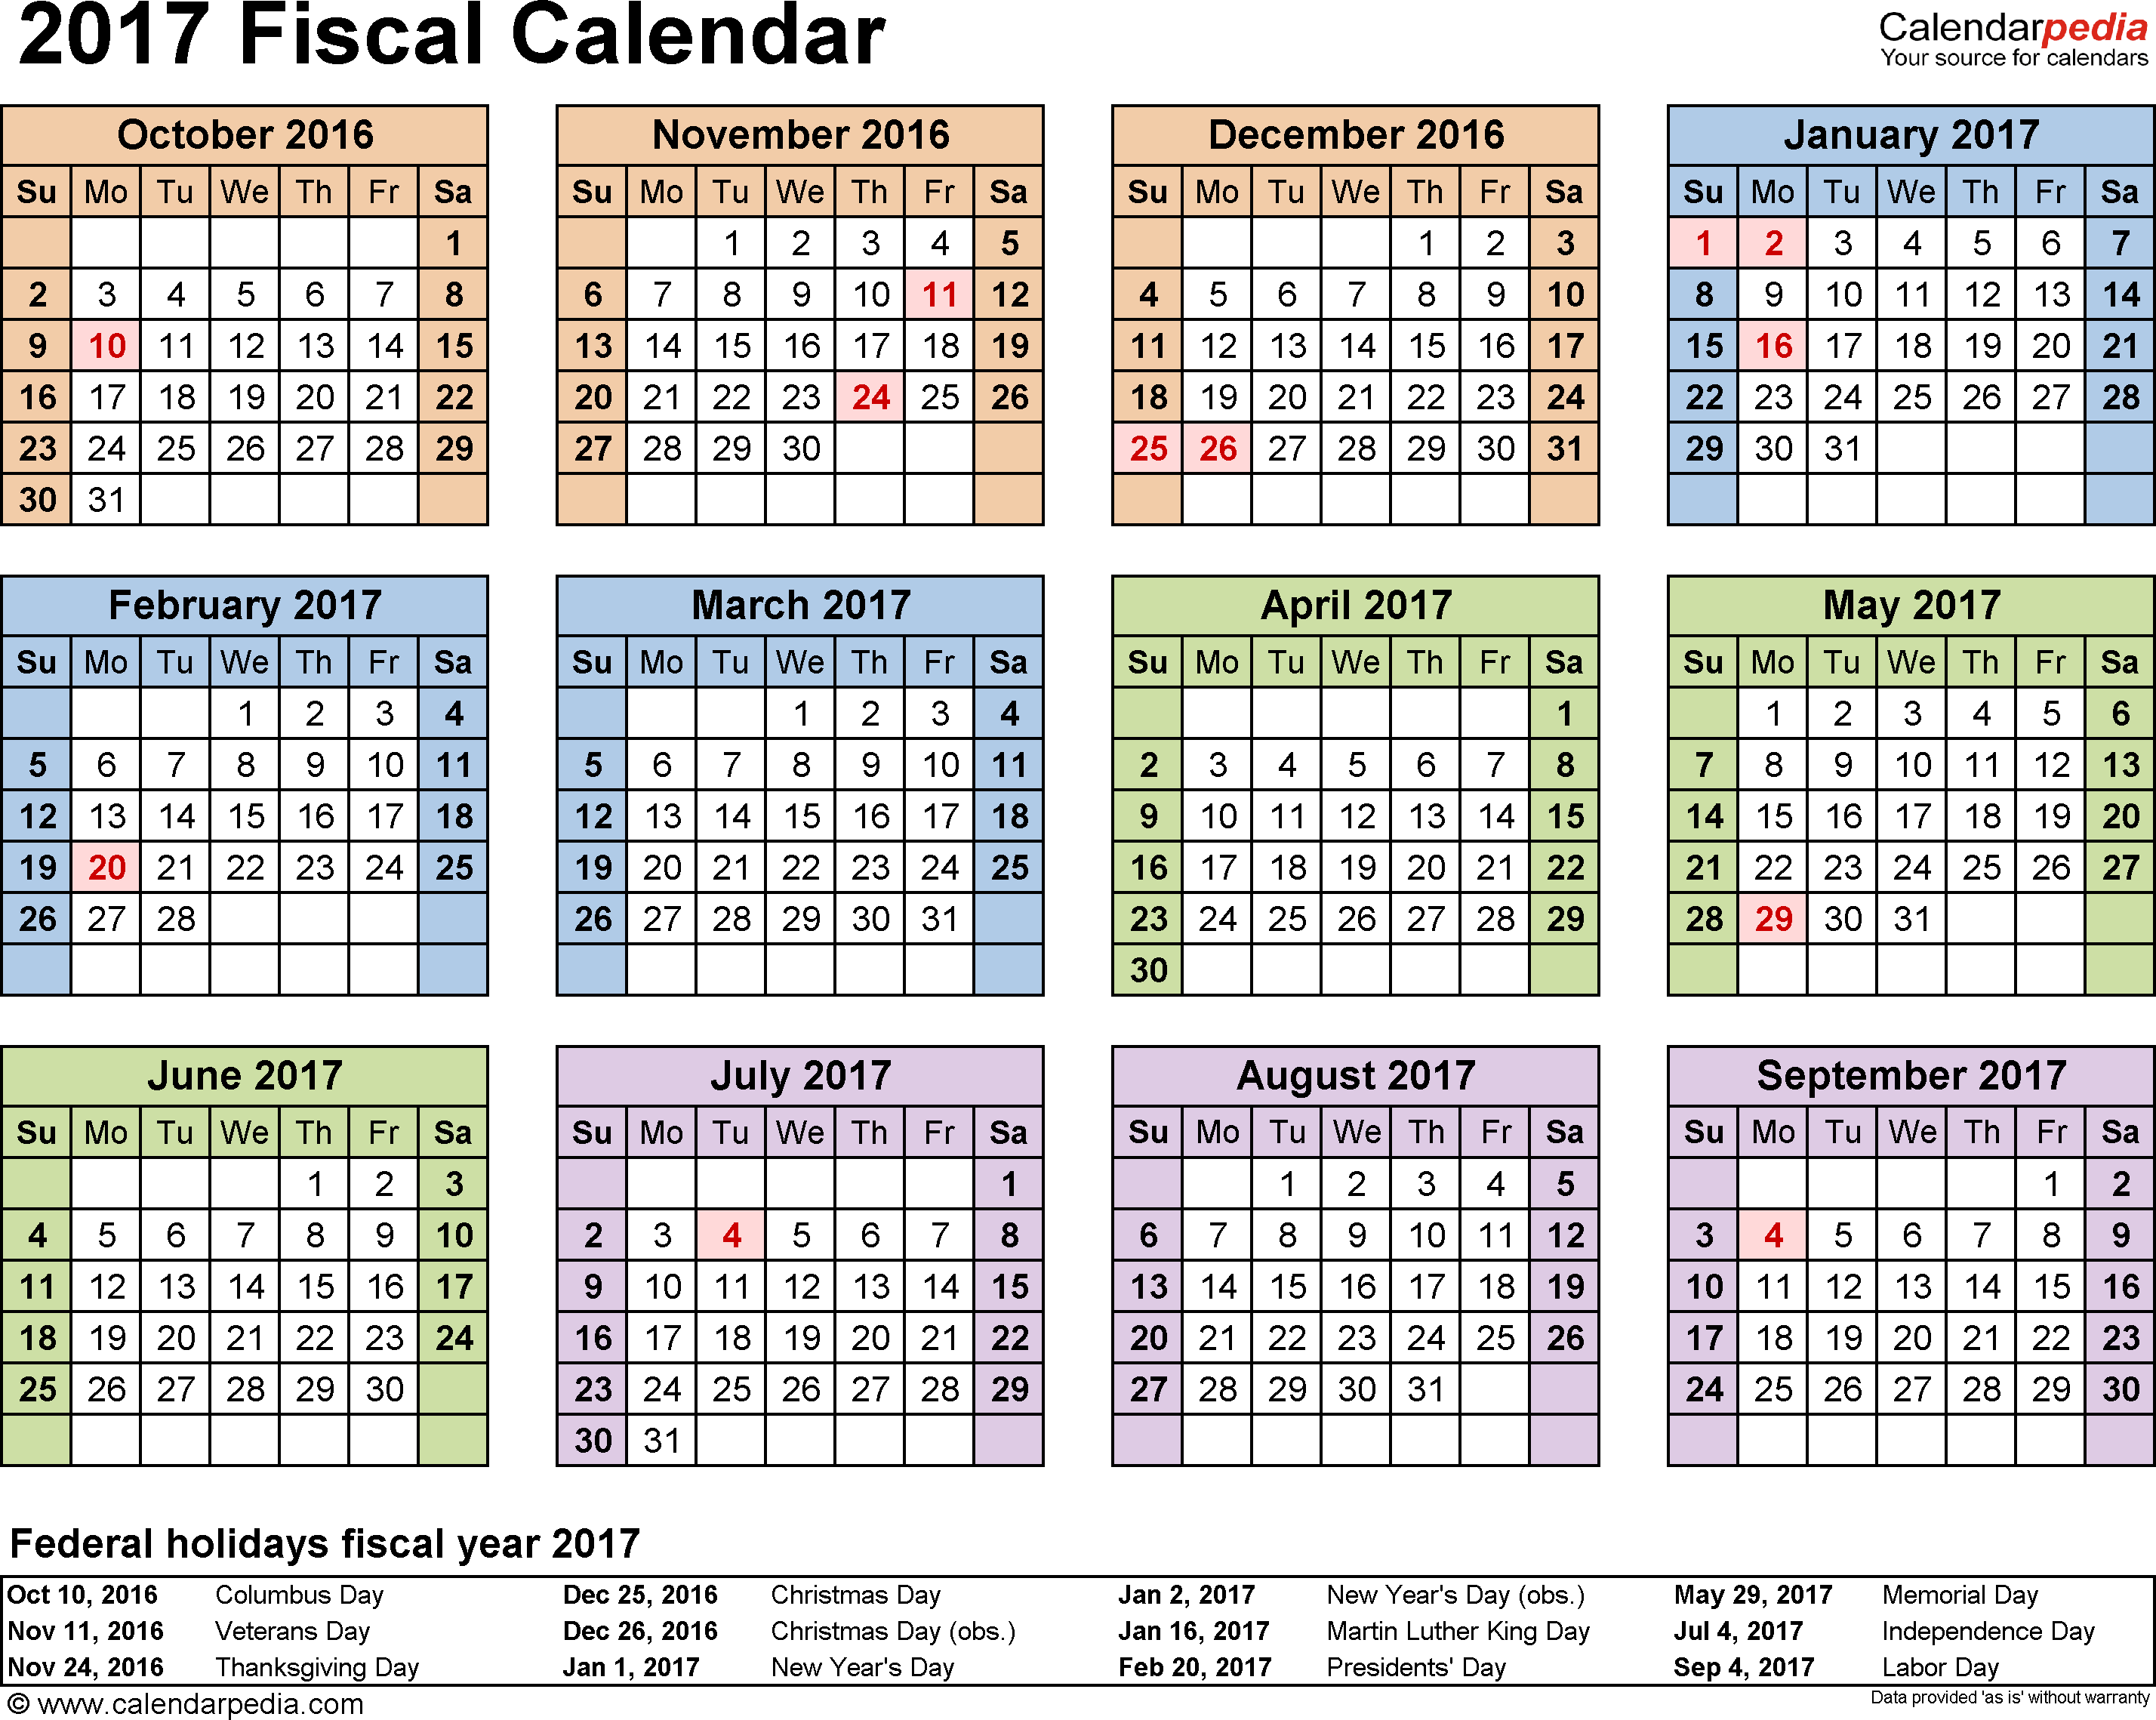 Template 4: Fiscal year calendar 2017 for Excel, landscape orientation, year at a glance, 1 page